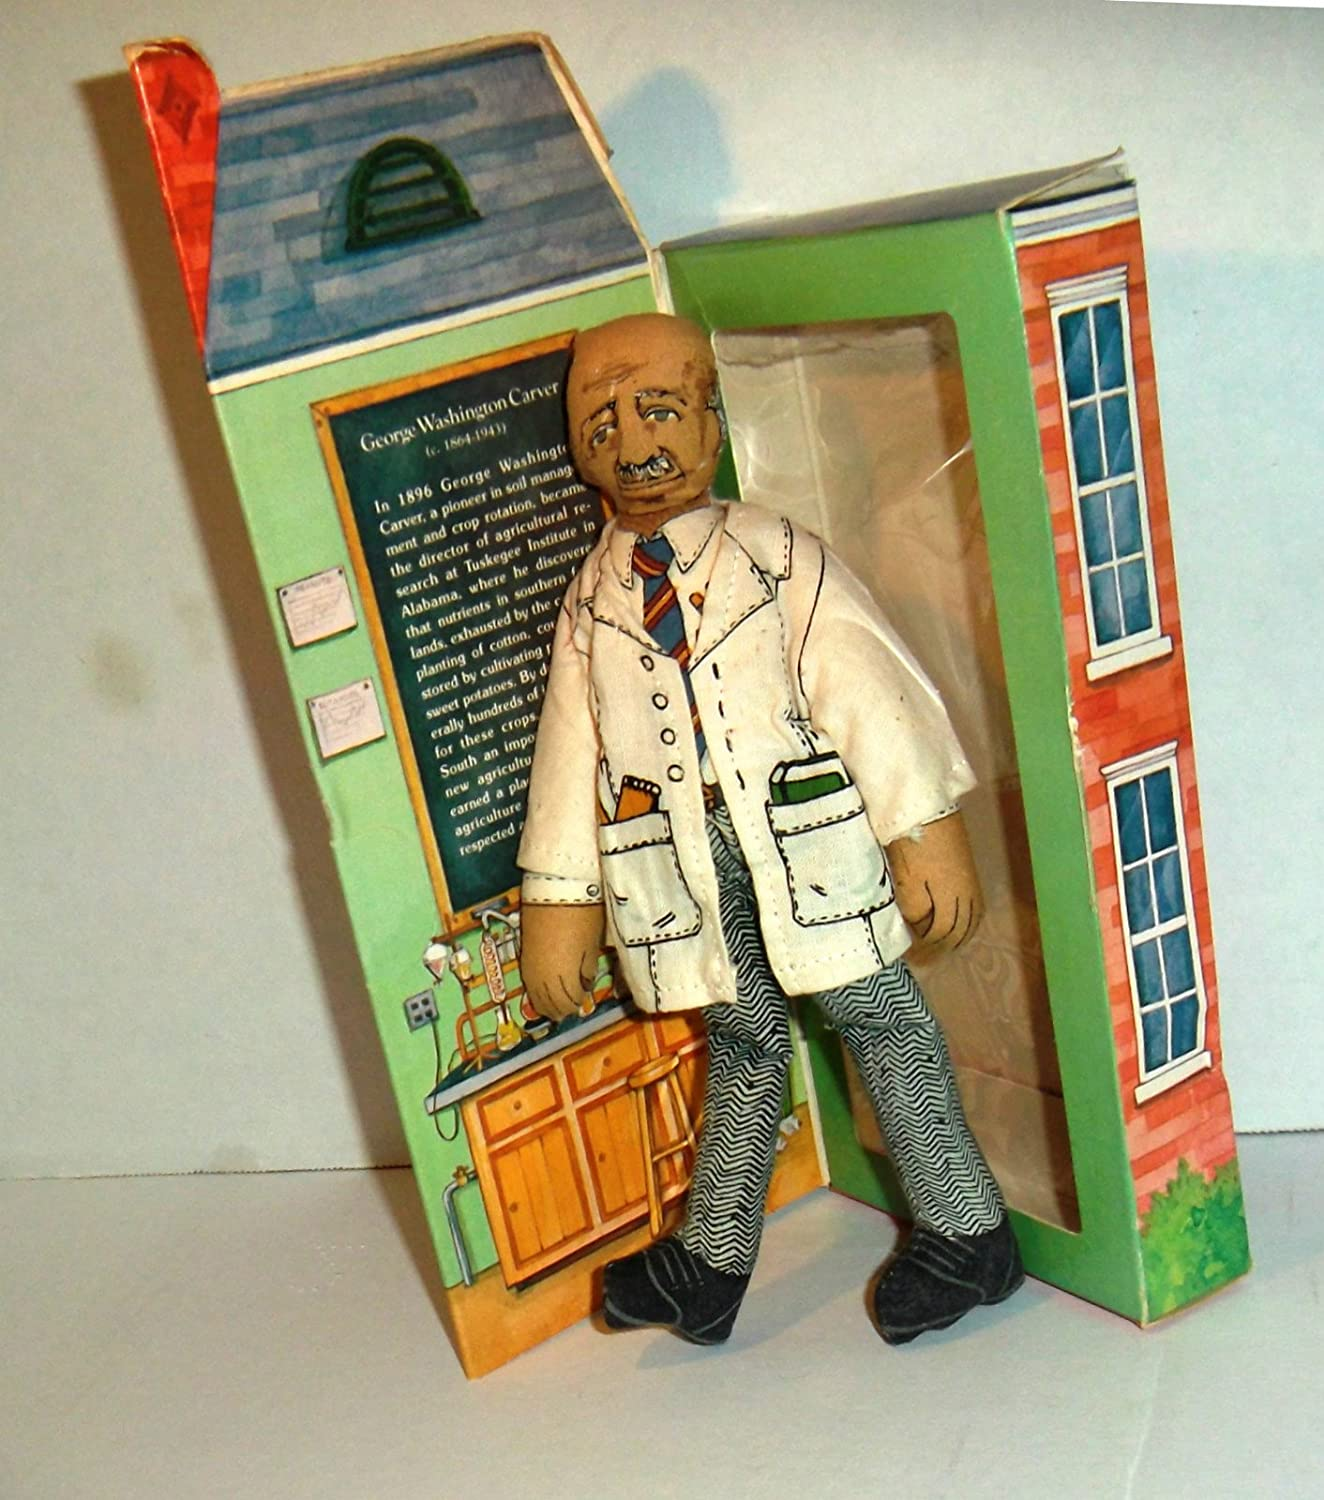 Hallmark Collectible Doll - George Washington Carver, Famous Americans Series 1 DT113-7